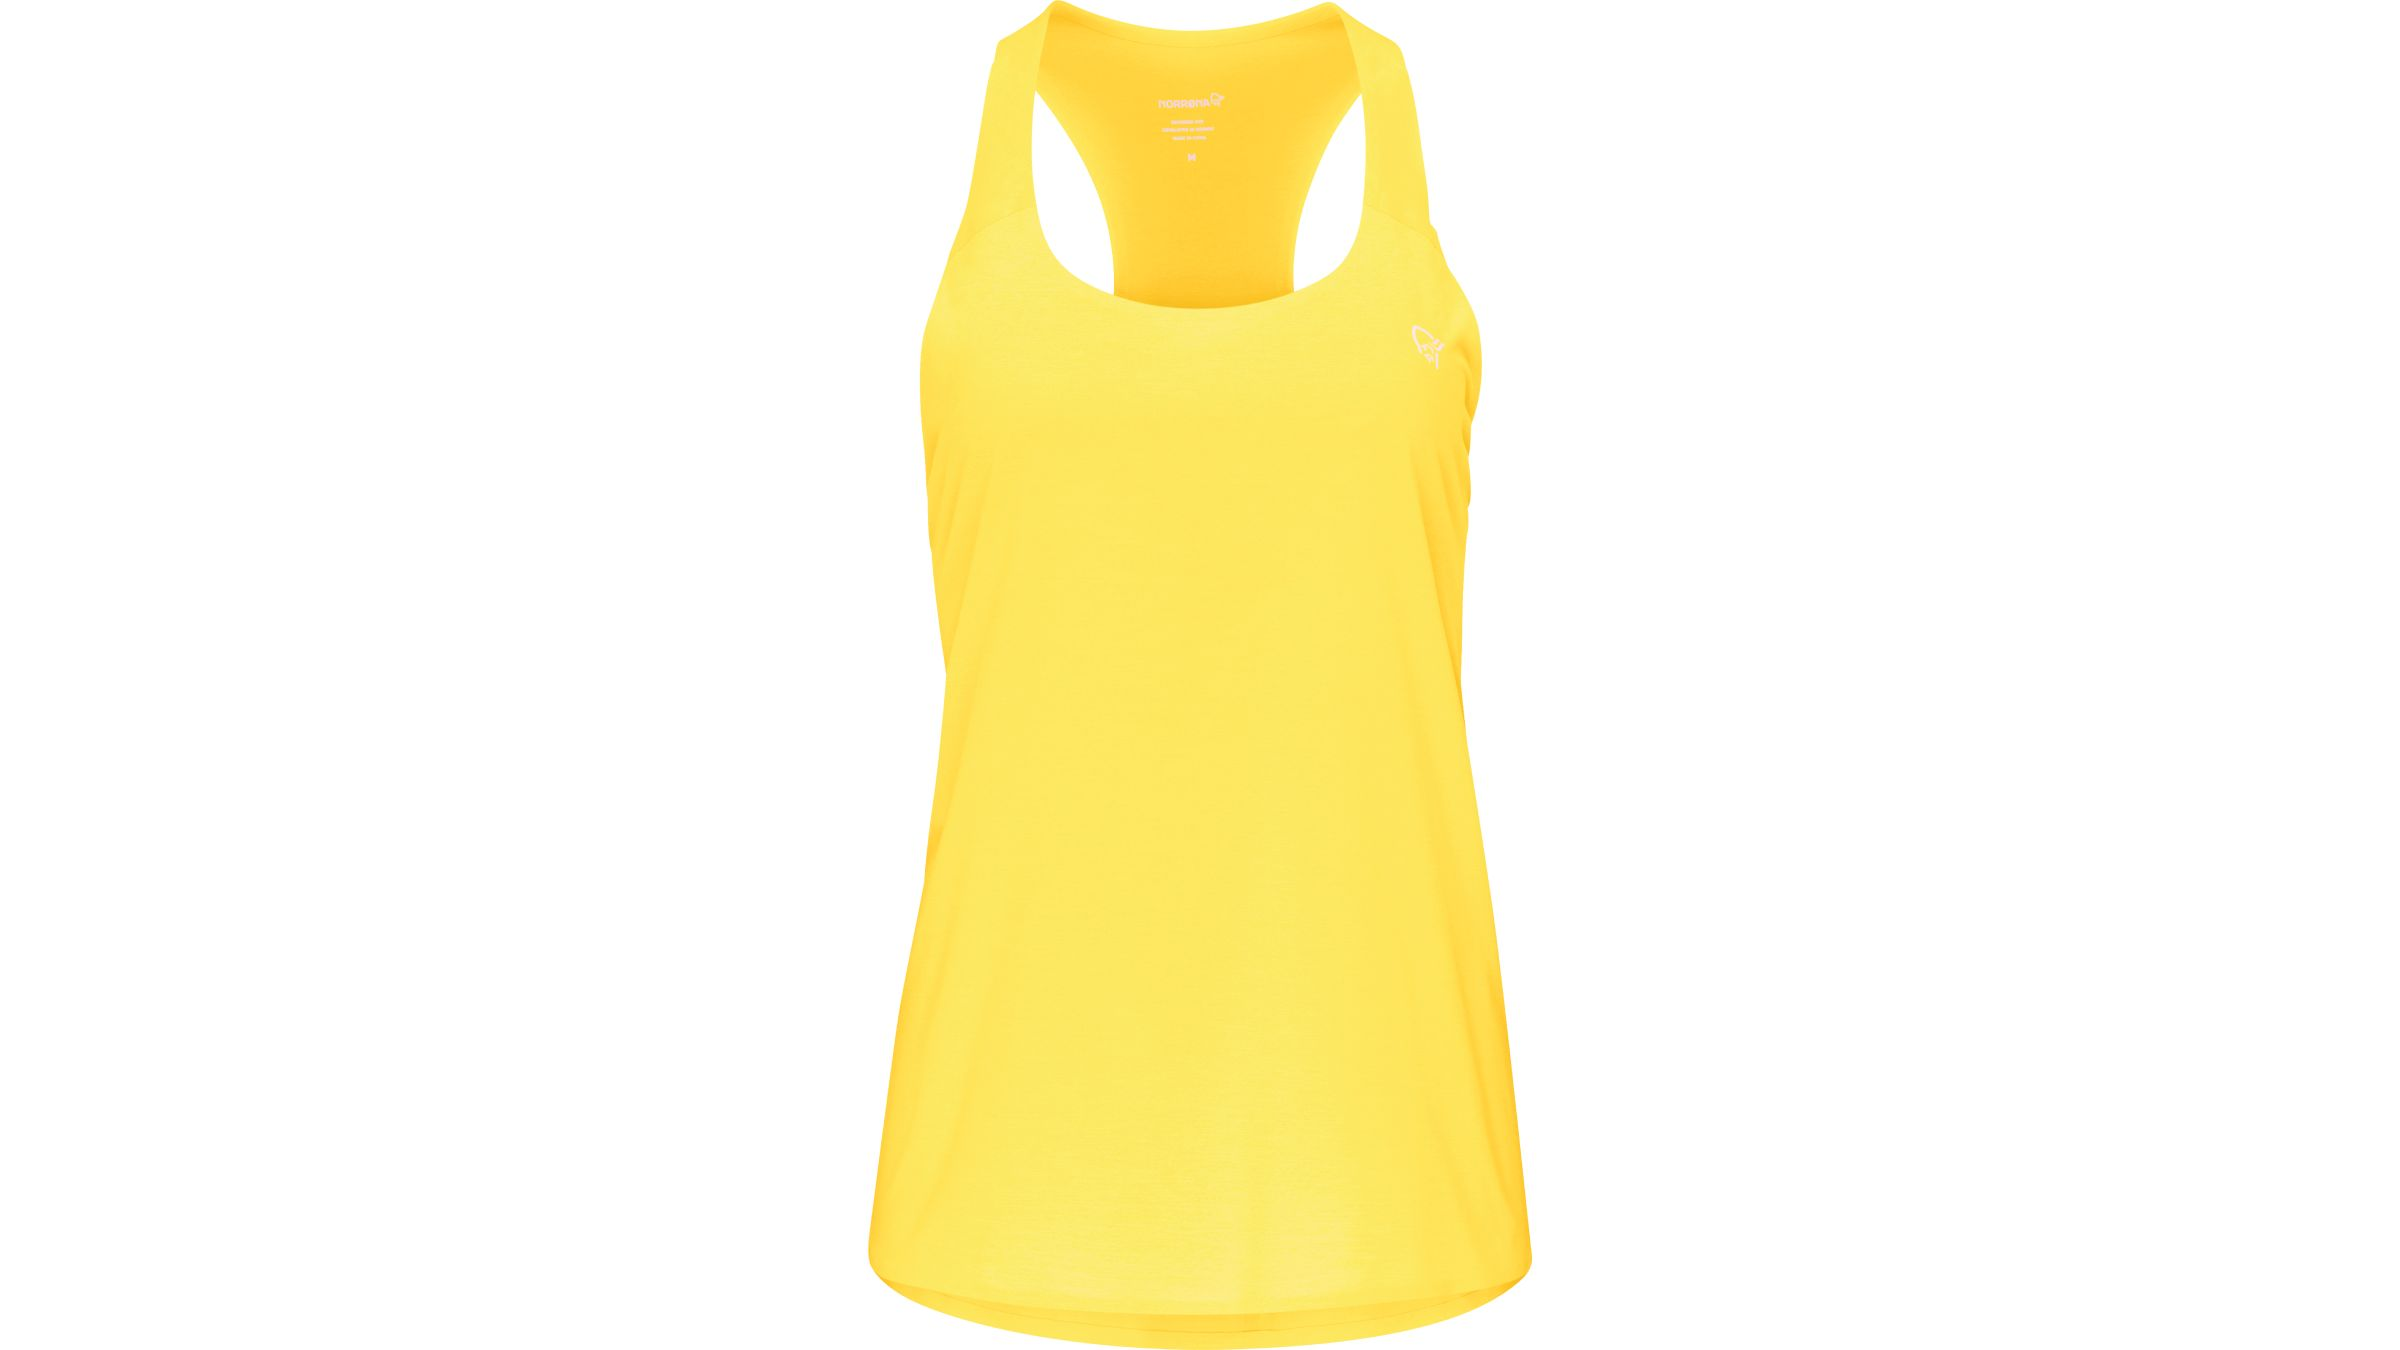 Yellow Norrona Singlet tank top